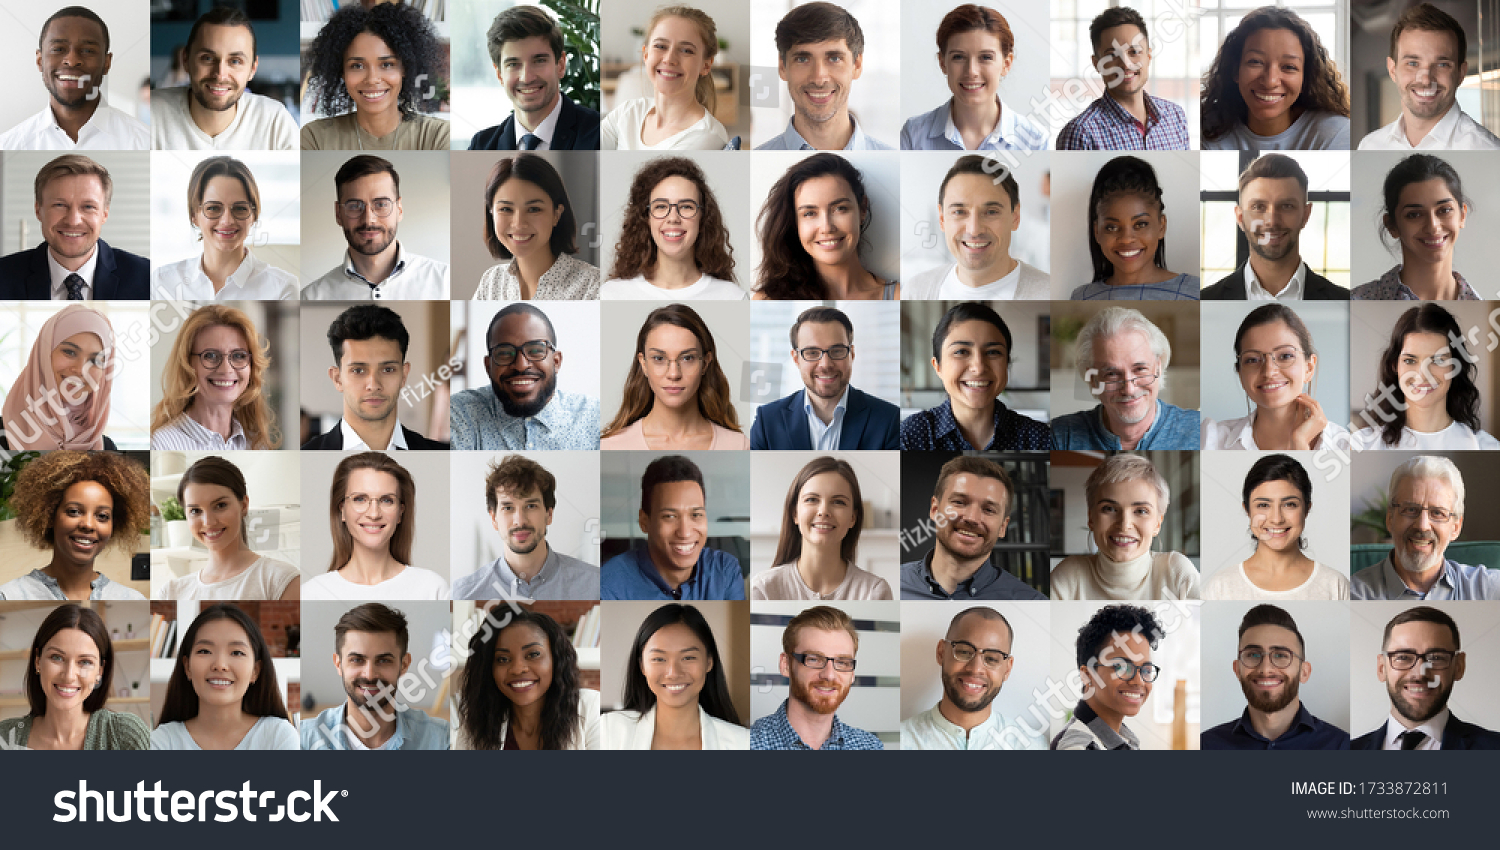 Many happy diverse ethnicity different young and old people group headshots in collage mosaic collection. Lot of smiling multicultural faces looking at camera. Human resource society database concept. #1733872811